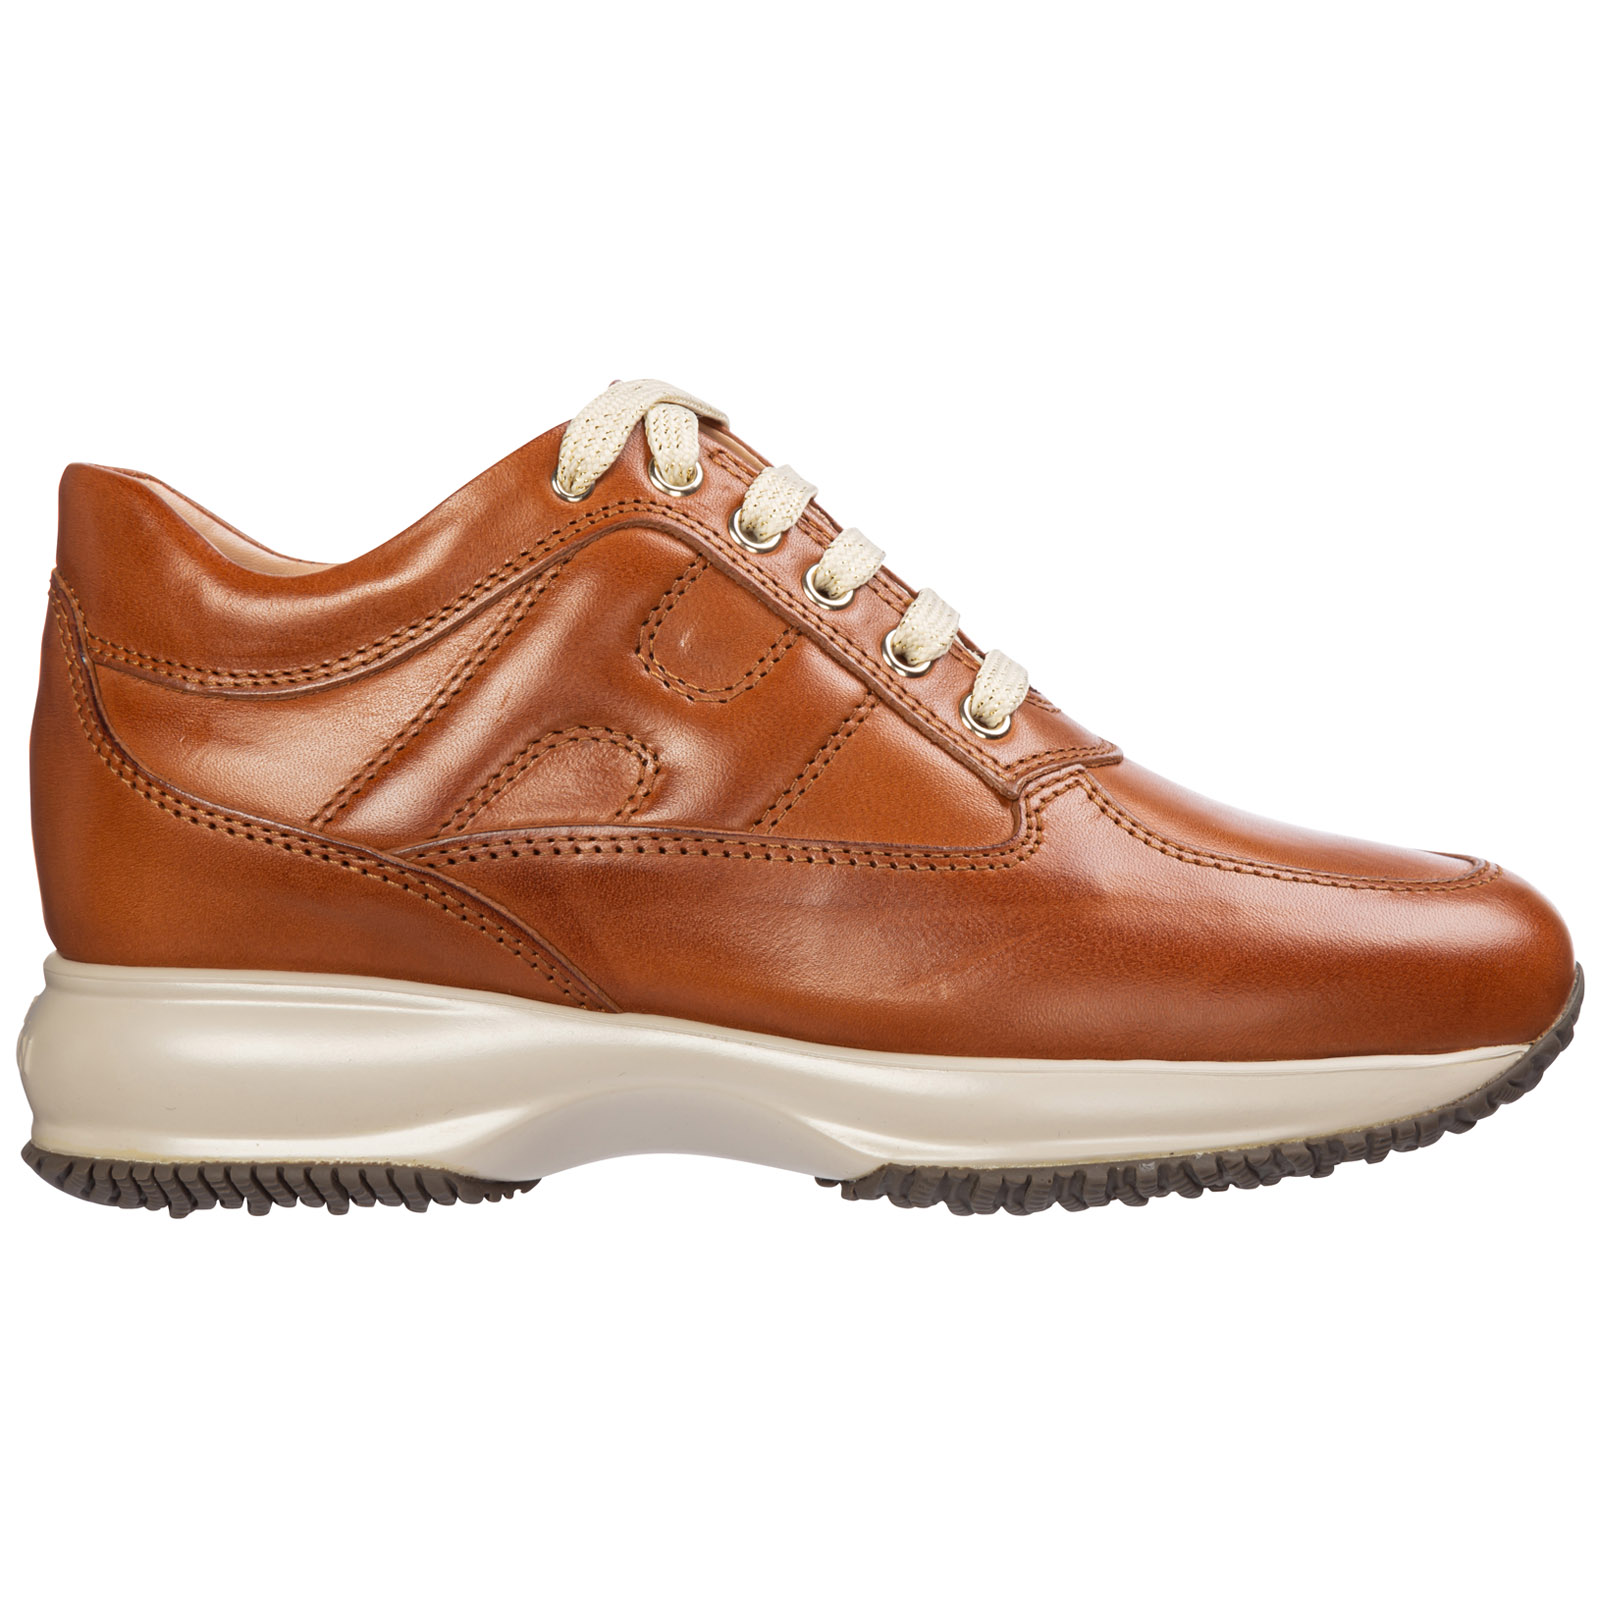 Hogan Women's Shoes Leather Trainers Sneakers Interactive In Brown